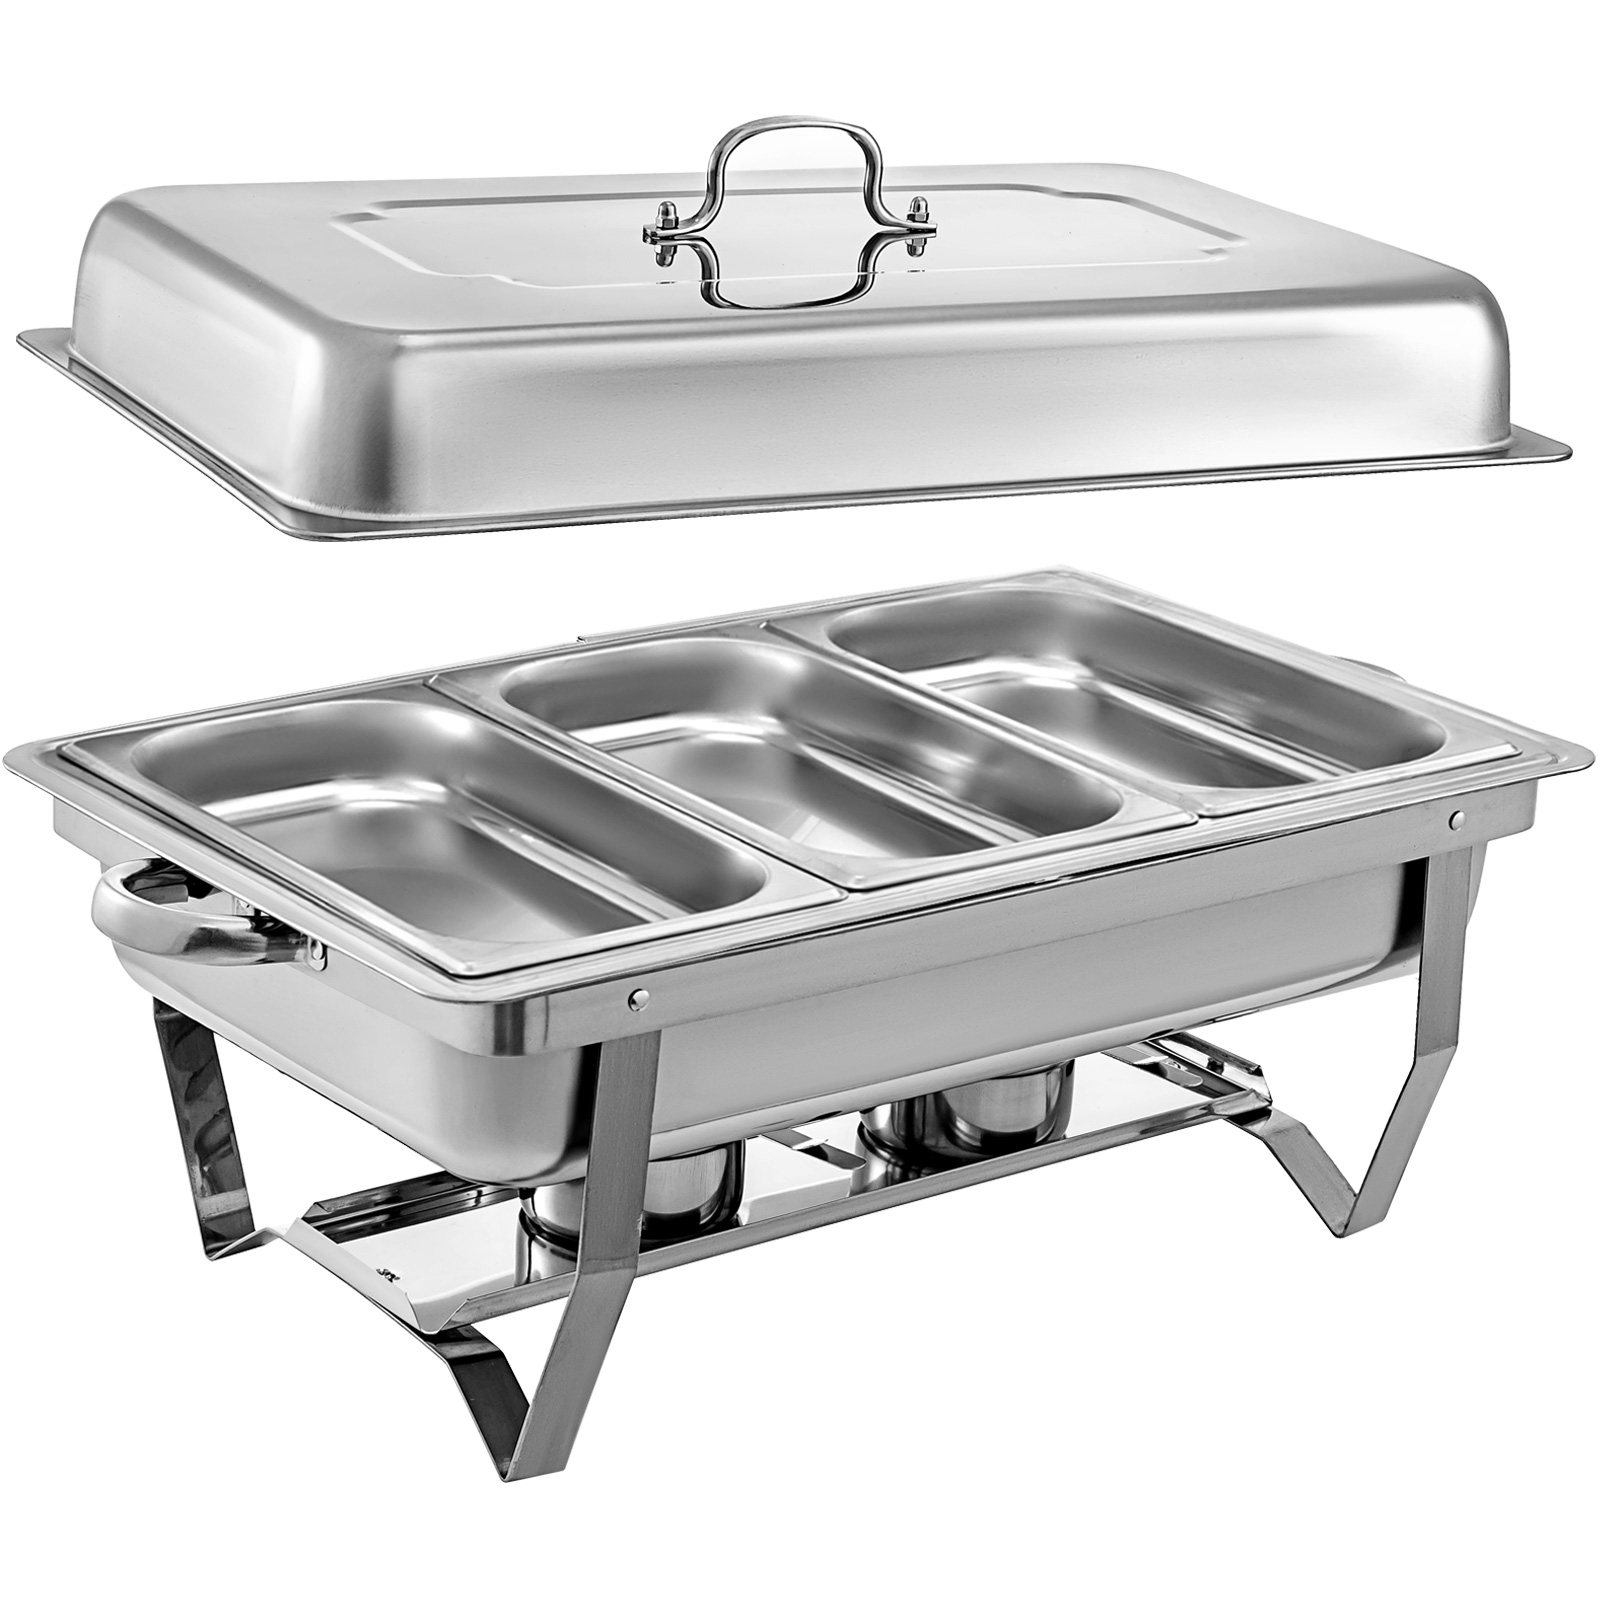 thumbnail 108 - Multi-Stainless-Steel-Chafing-Dish-Bain-Marie-Bow-Catering-Dish-Hotpot-Server